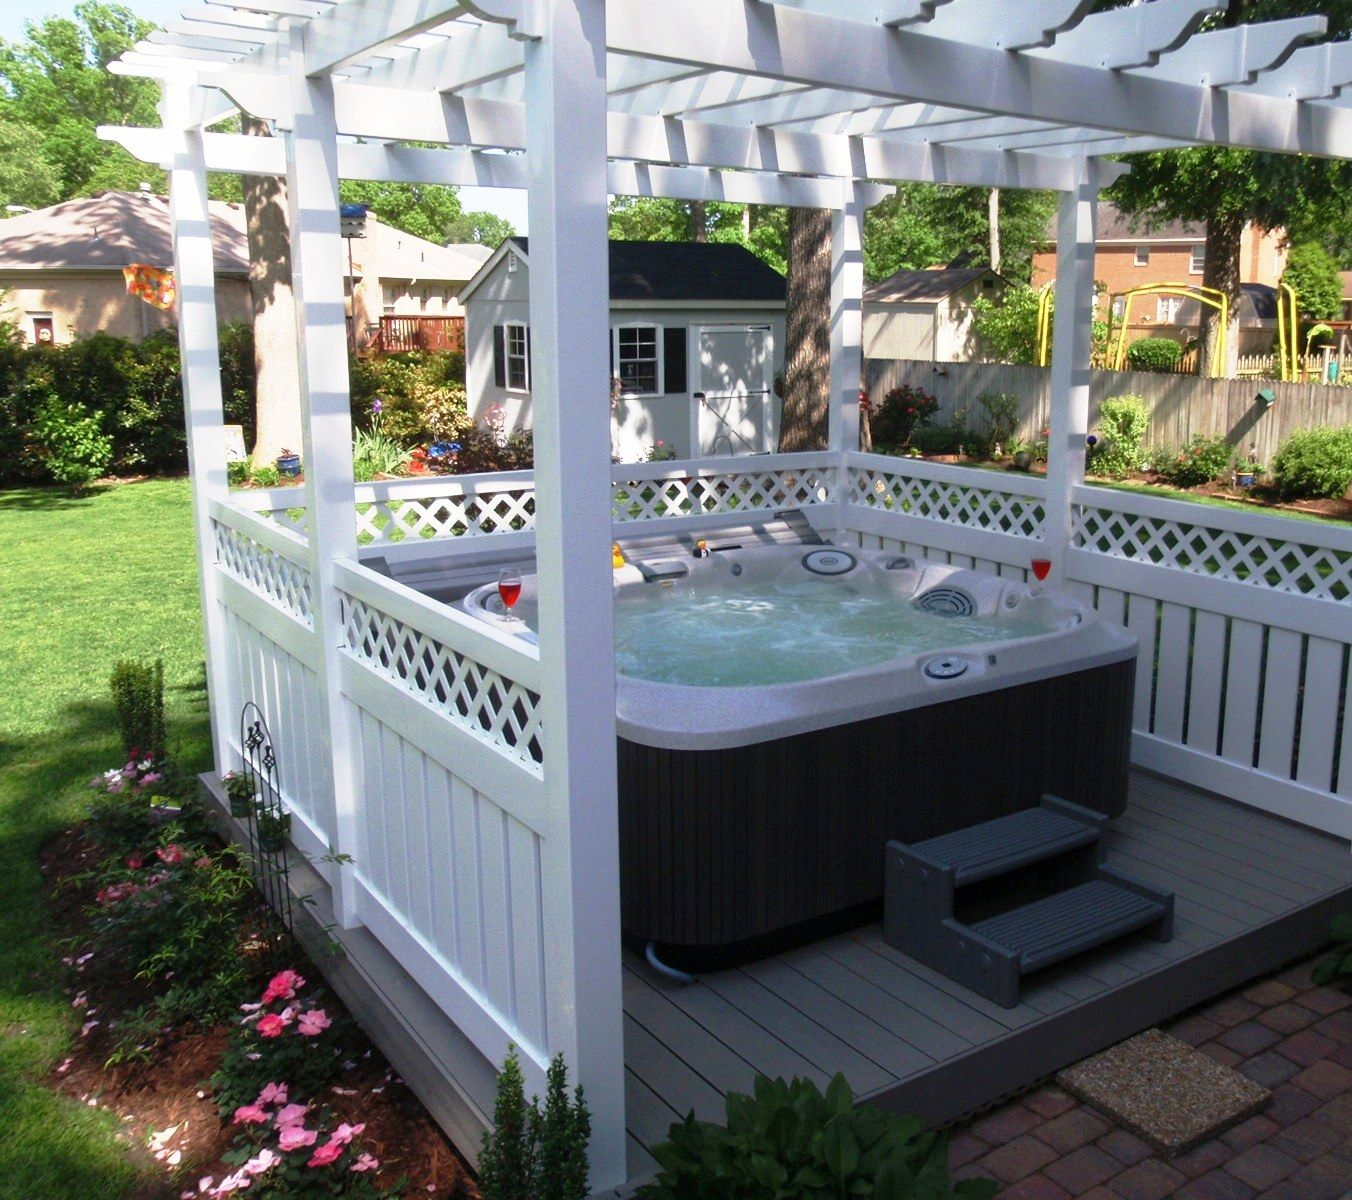 8 ways to place your original outdoor jacuzzi hot tubs tubs and decking. Black Bedroom Furniture Sets. Home Design Ideas